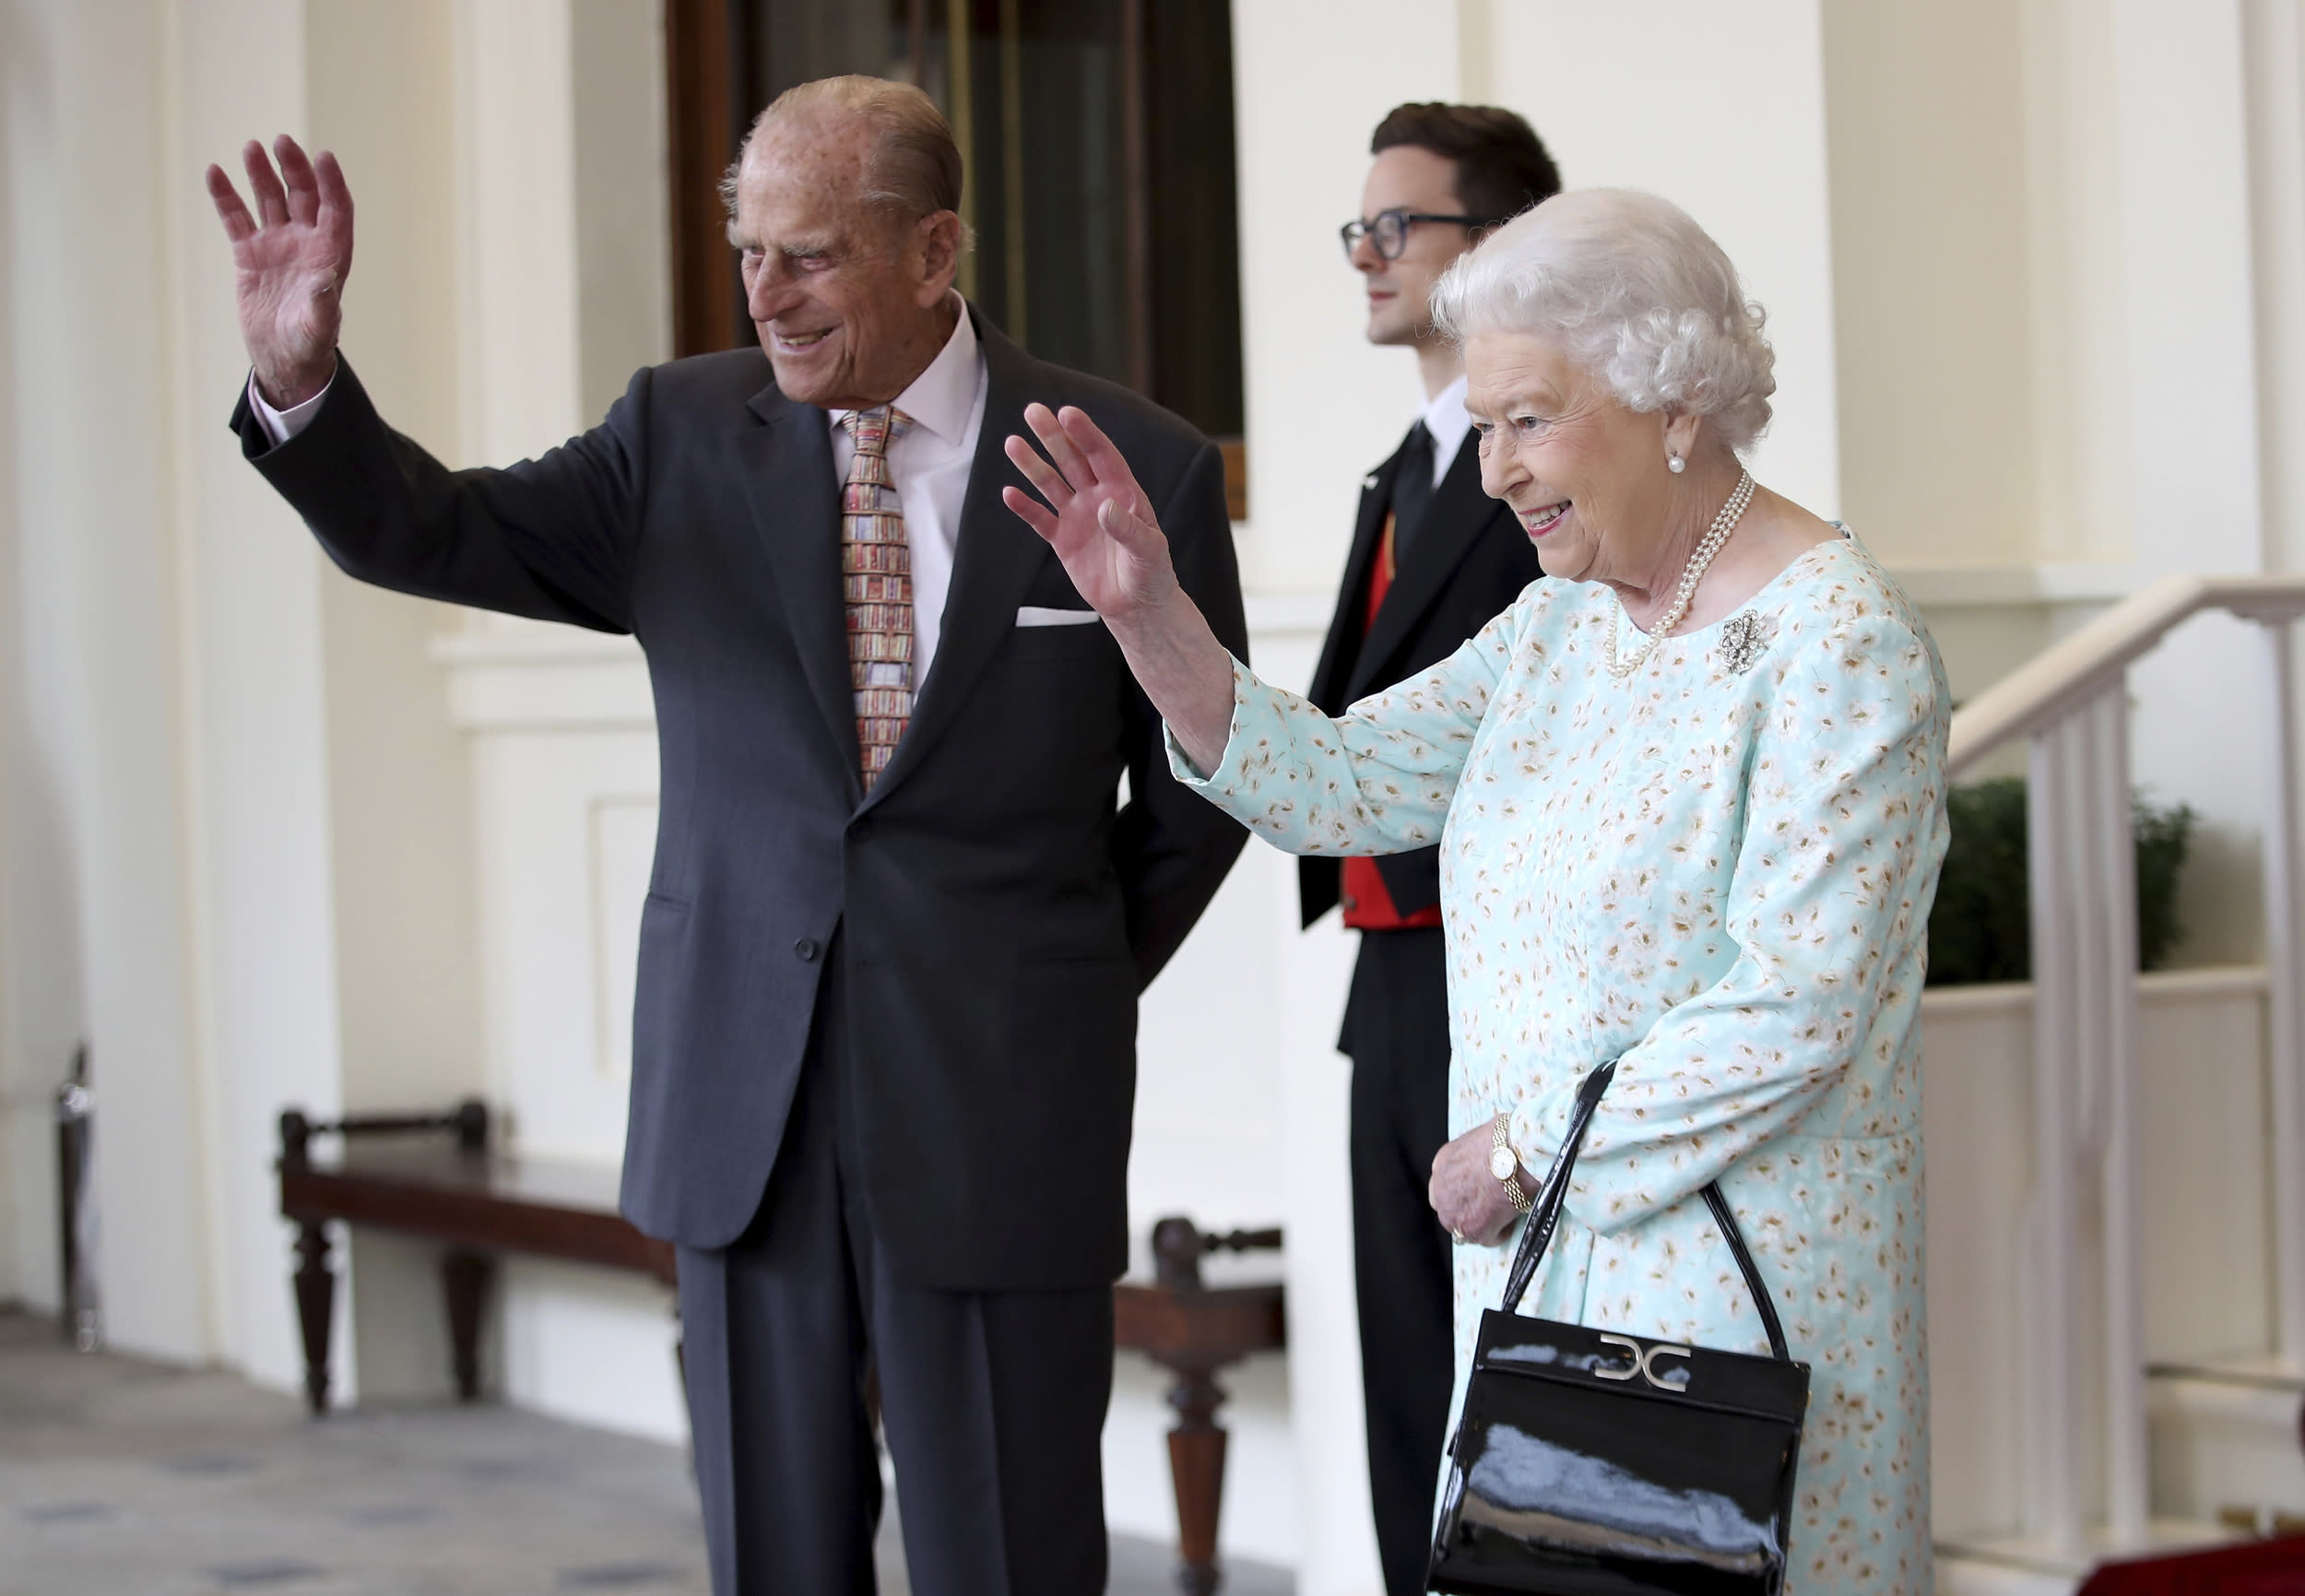 Britain's Queen Elizabeth II and Prince Philip wave as Spain's King Felipe and Queen Letizia leave Buckingham Palace, London, Friday July 14, 2017, after their three day State visit. (Chris Jackson/Pool via AP)